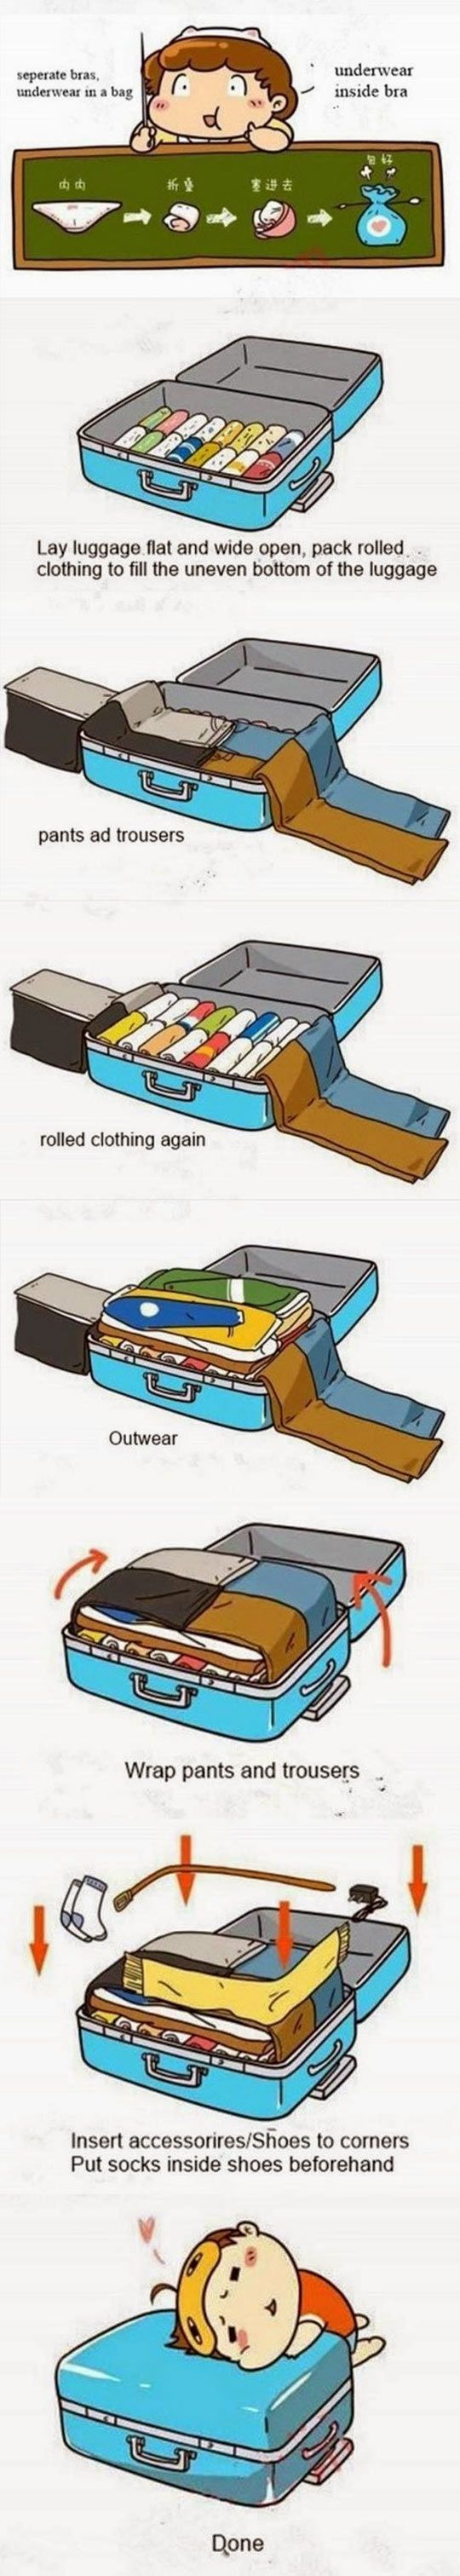 Best way to fold clothes for a trip - Packing Luggage Properly